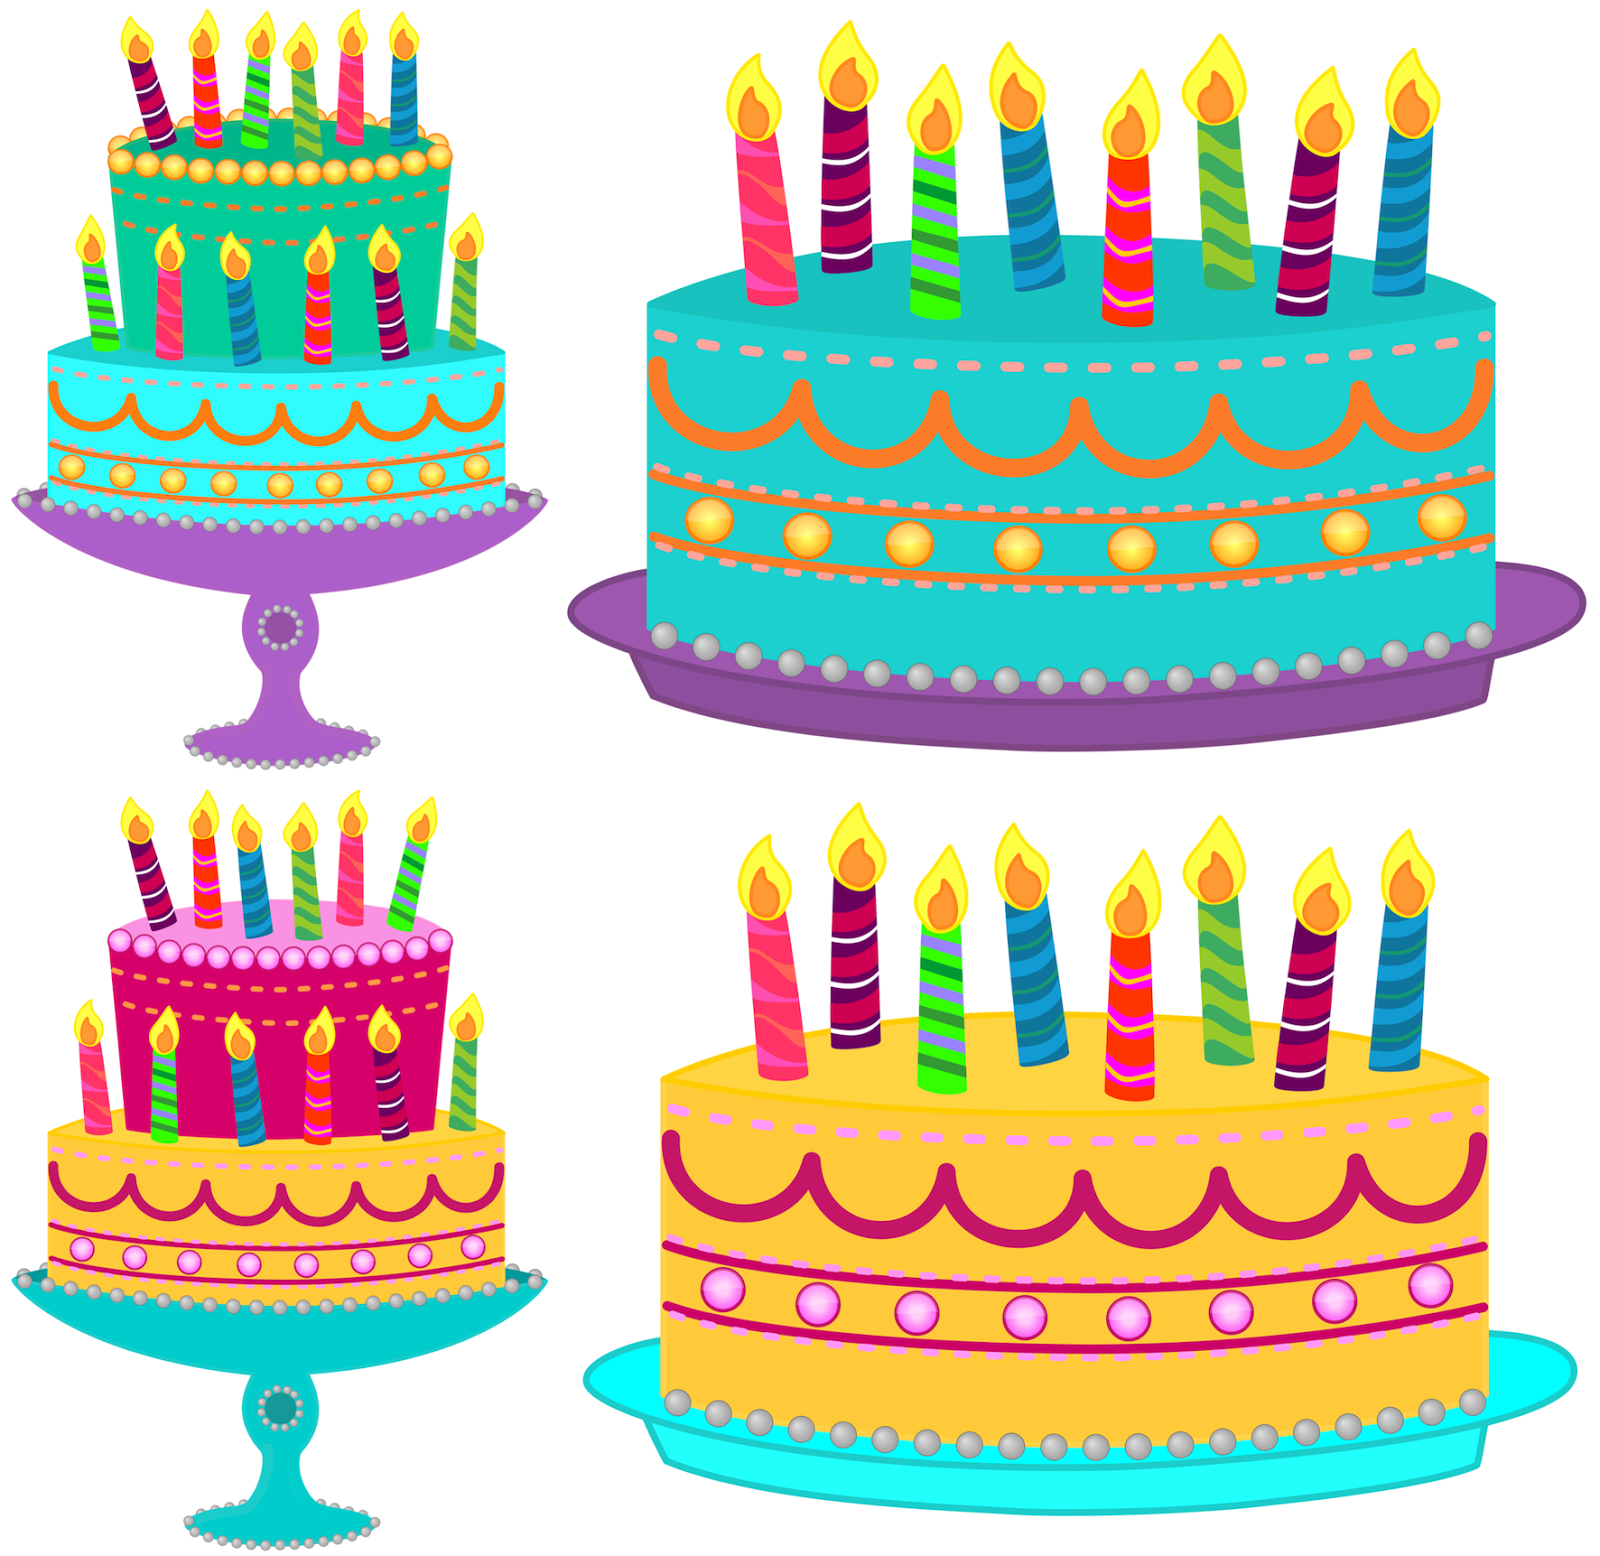 Free clipart birthday cake with candles jpg royalty free download July Birthday Cake Clipart Blue cake with no candles | Birthday clip ... jpg royalty free download